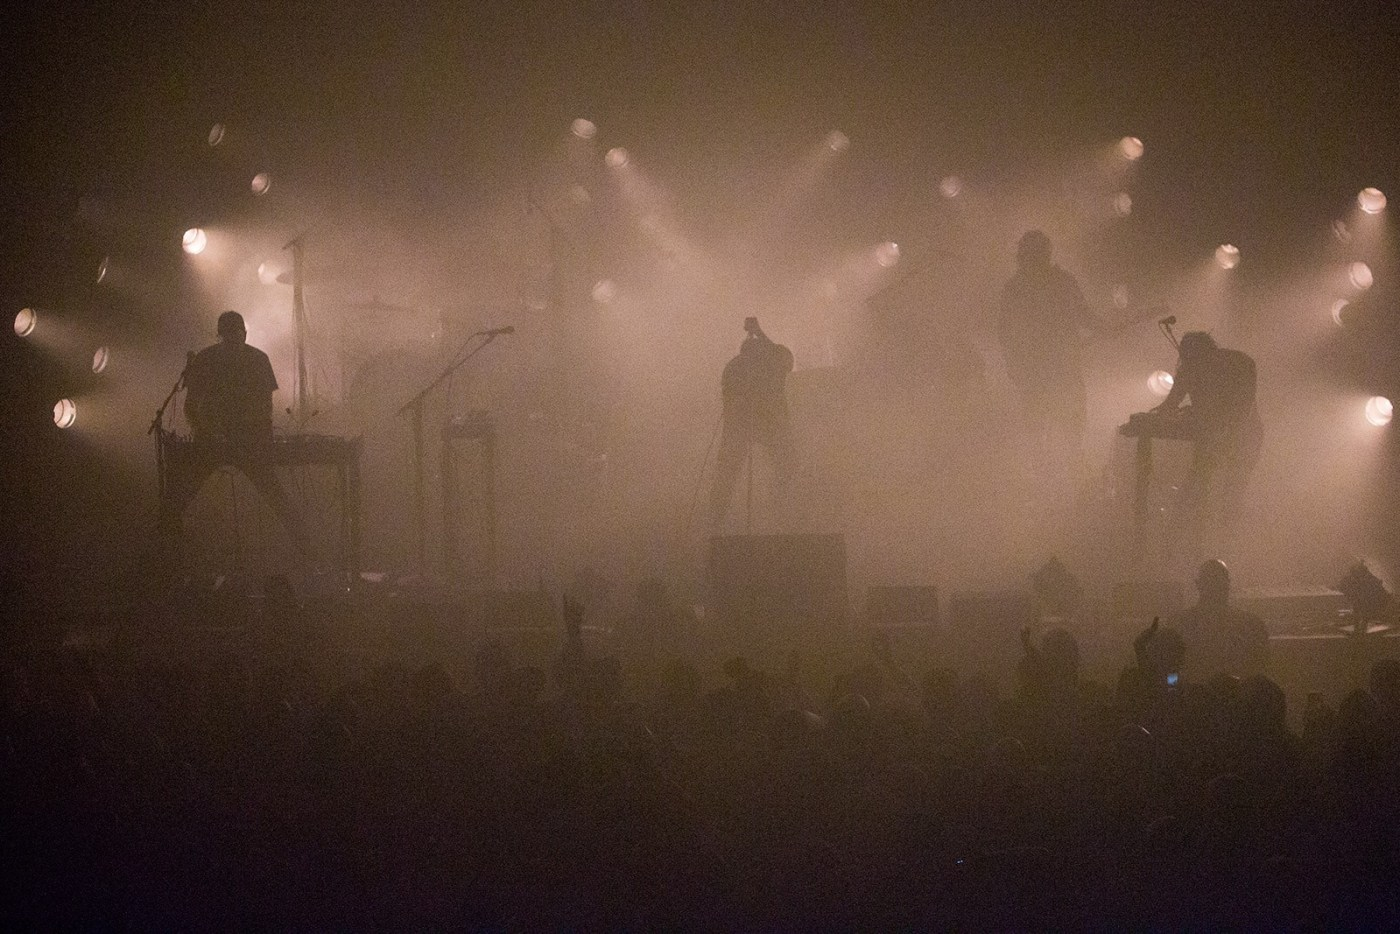 nineinchnails-websterhall-06-800x534@2x